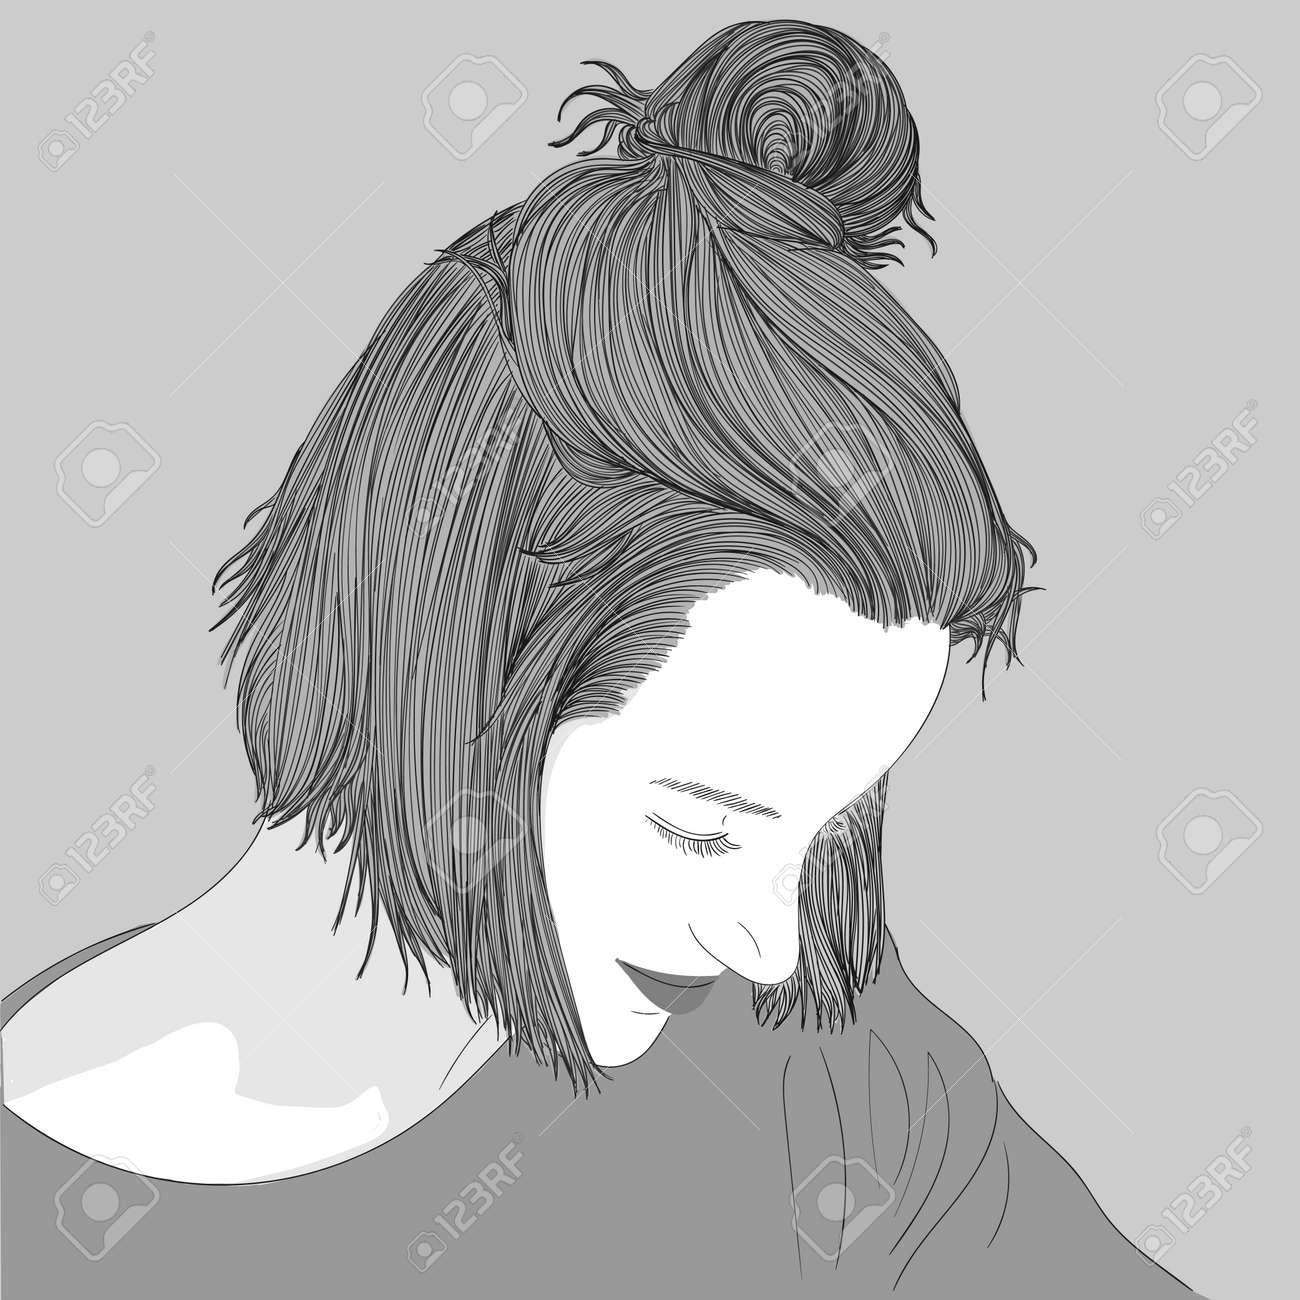 Doodle beautiful woman drawing a sketch of a female hairstyle fashion illustration of girl